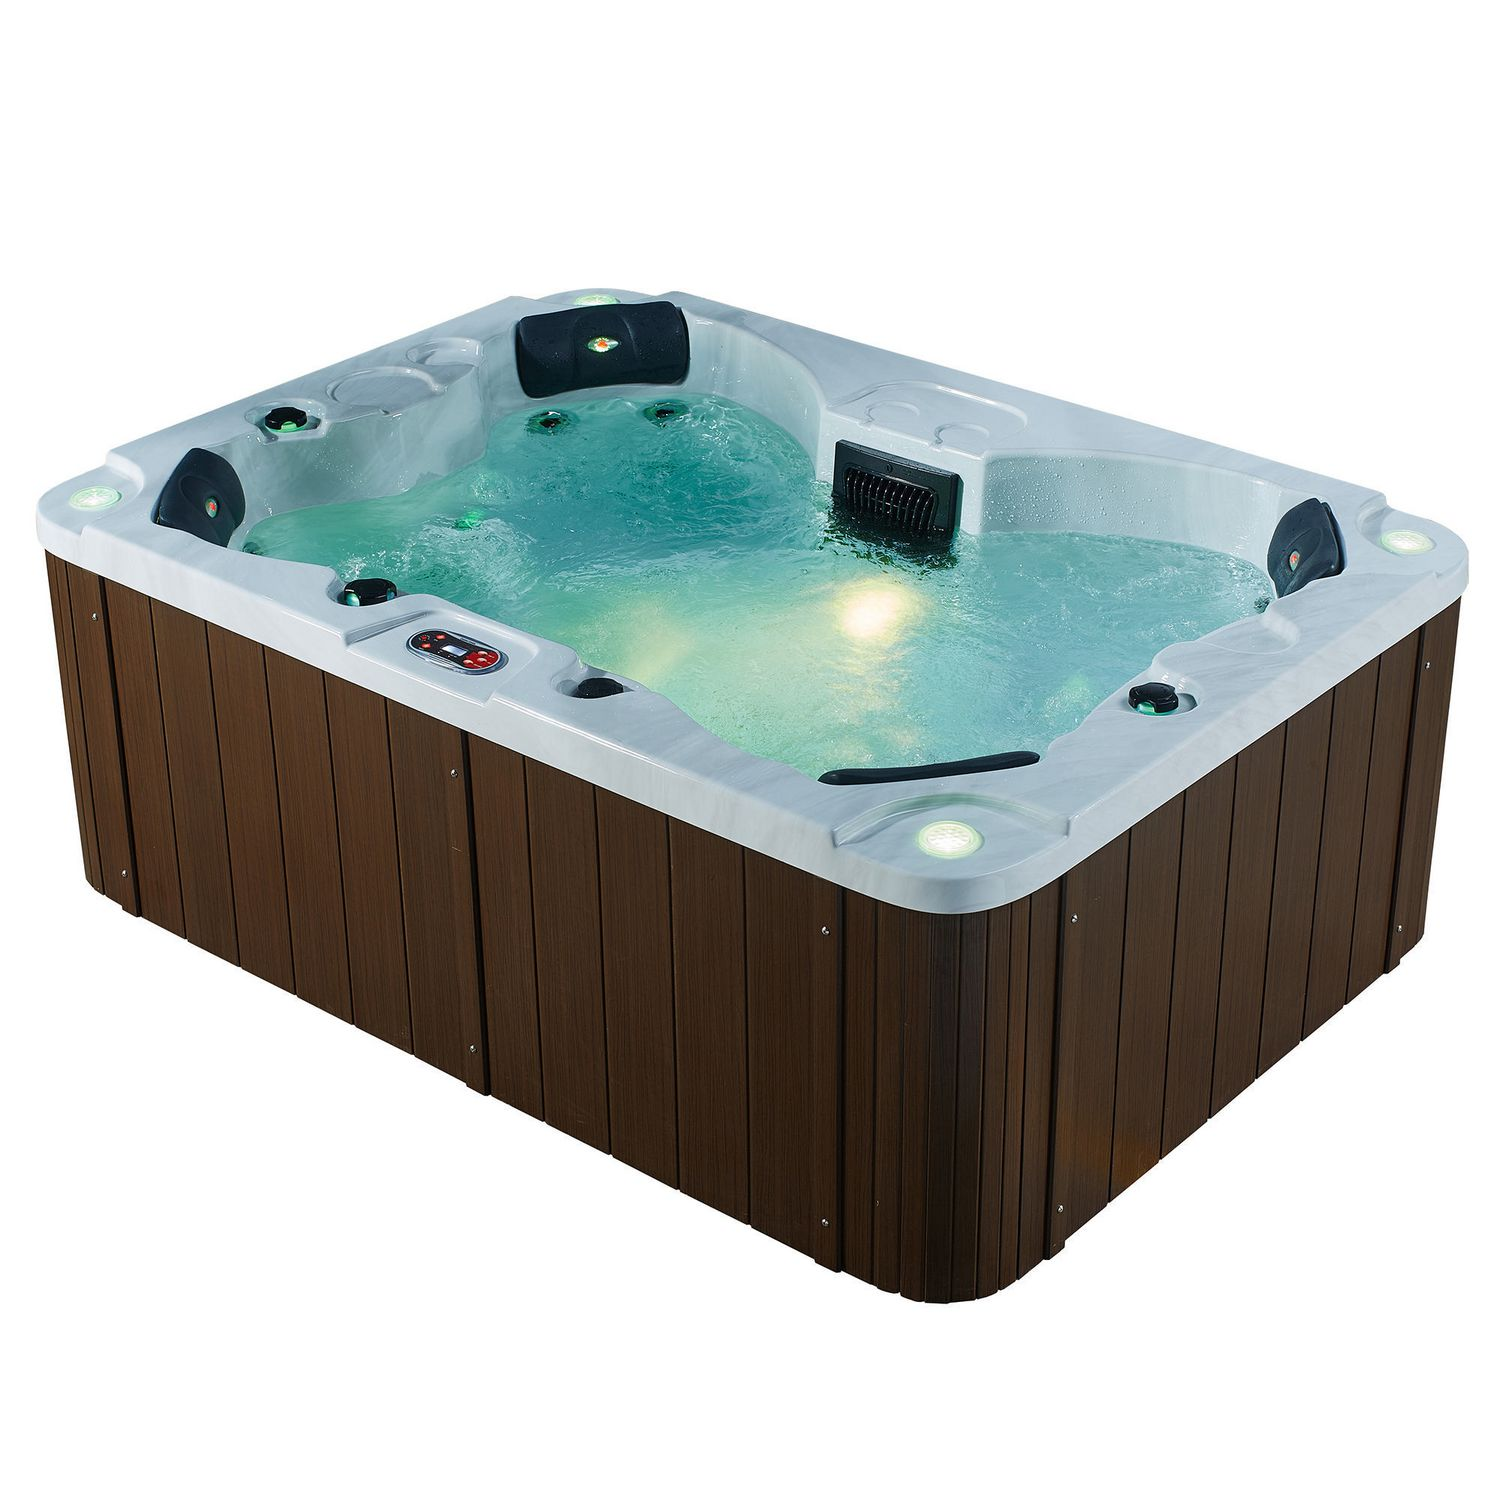 sport swan person stella w item indoor tubs se nordic hot outdoor tub edition in woman